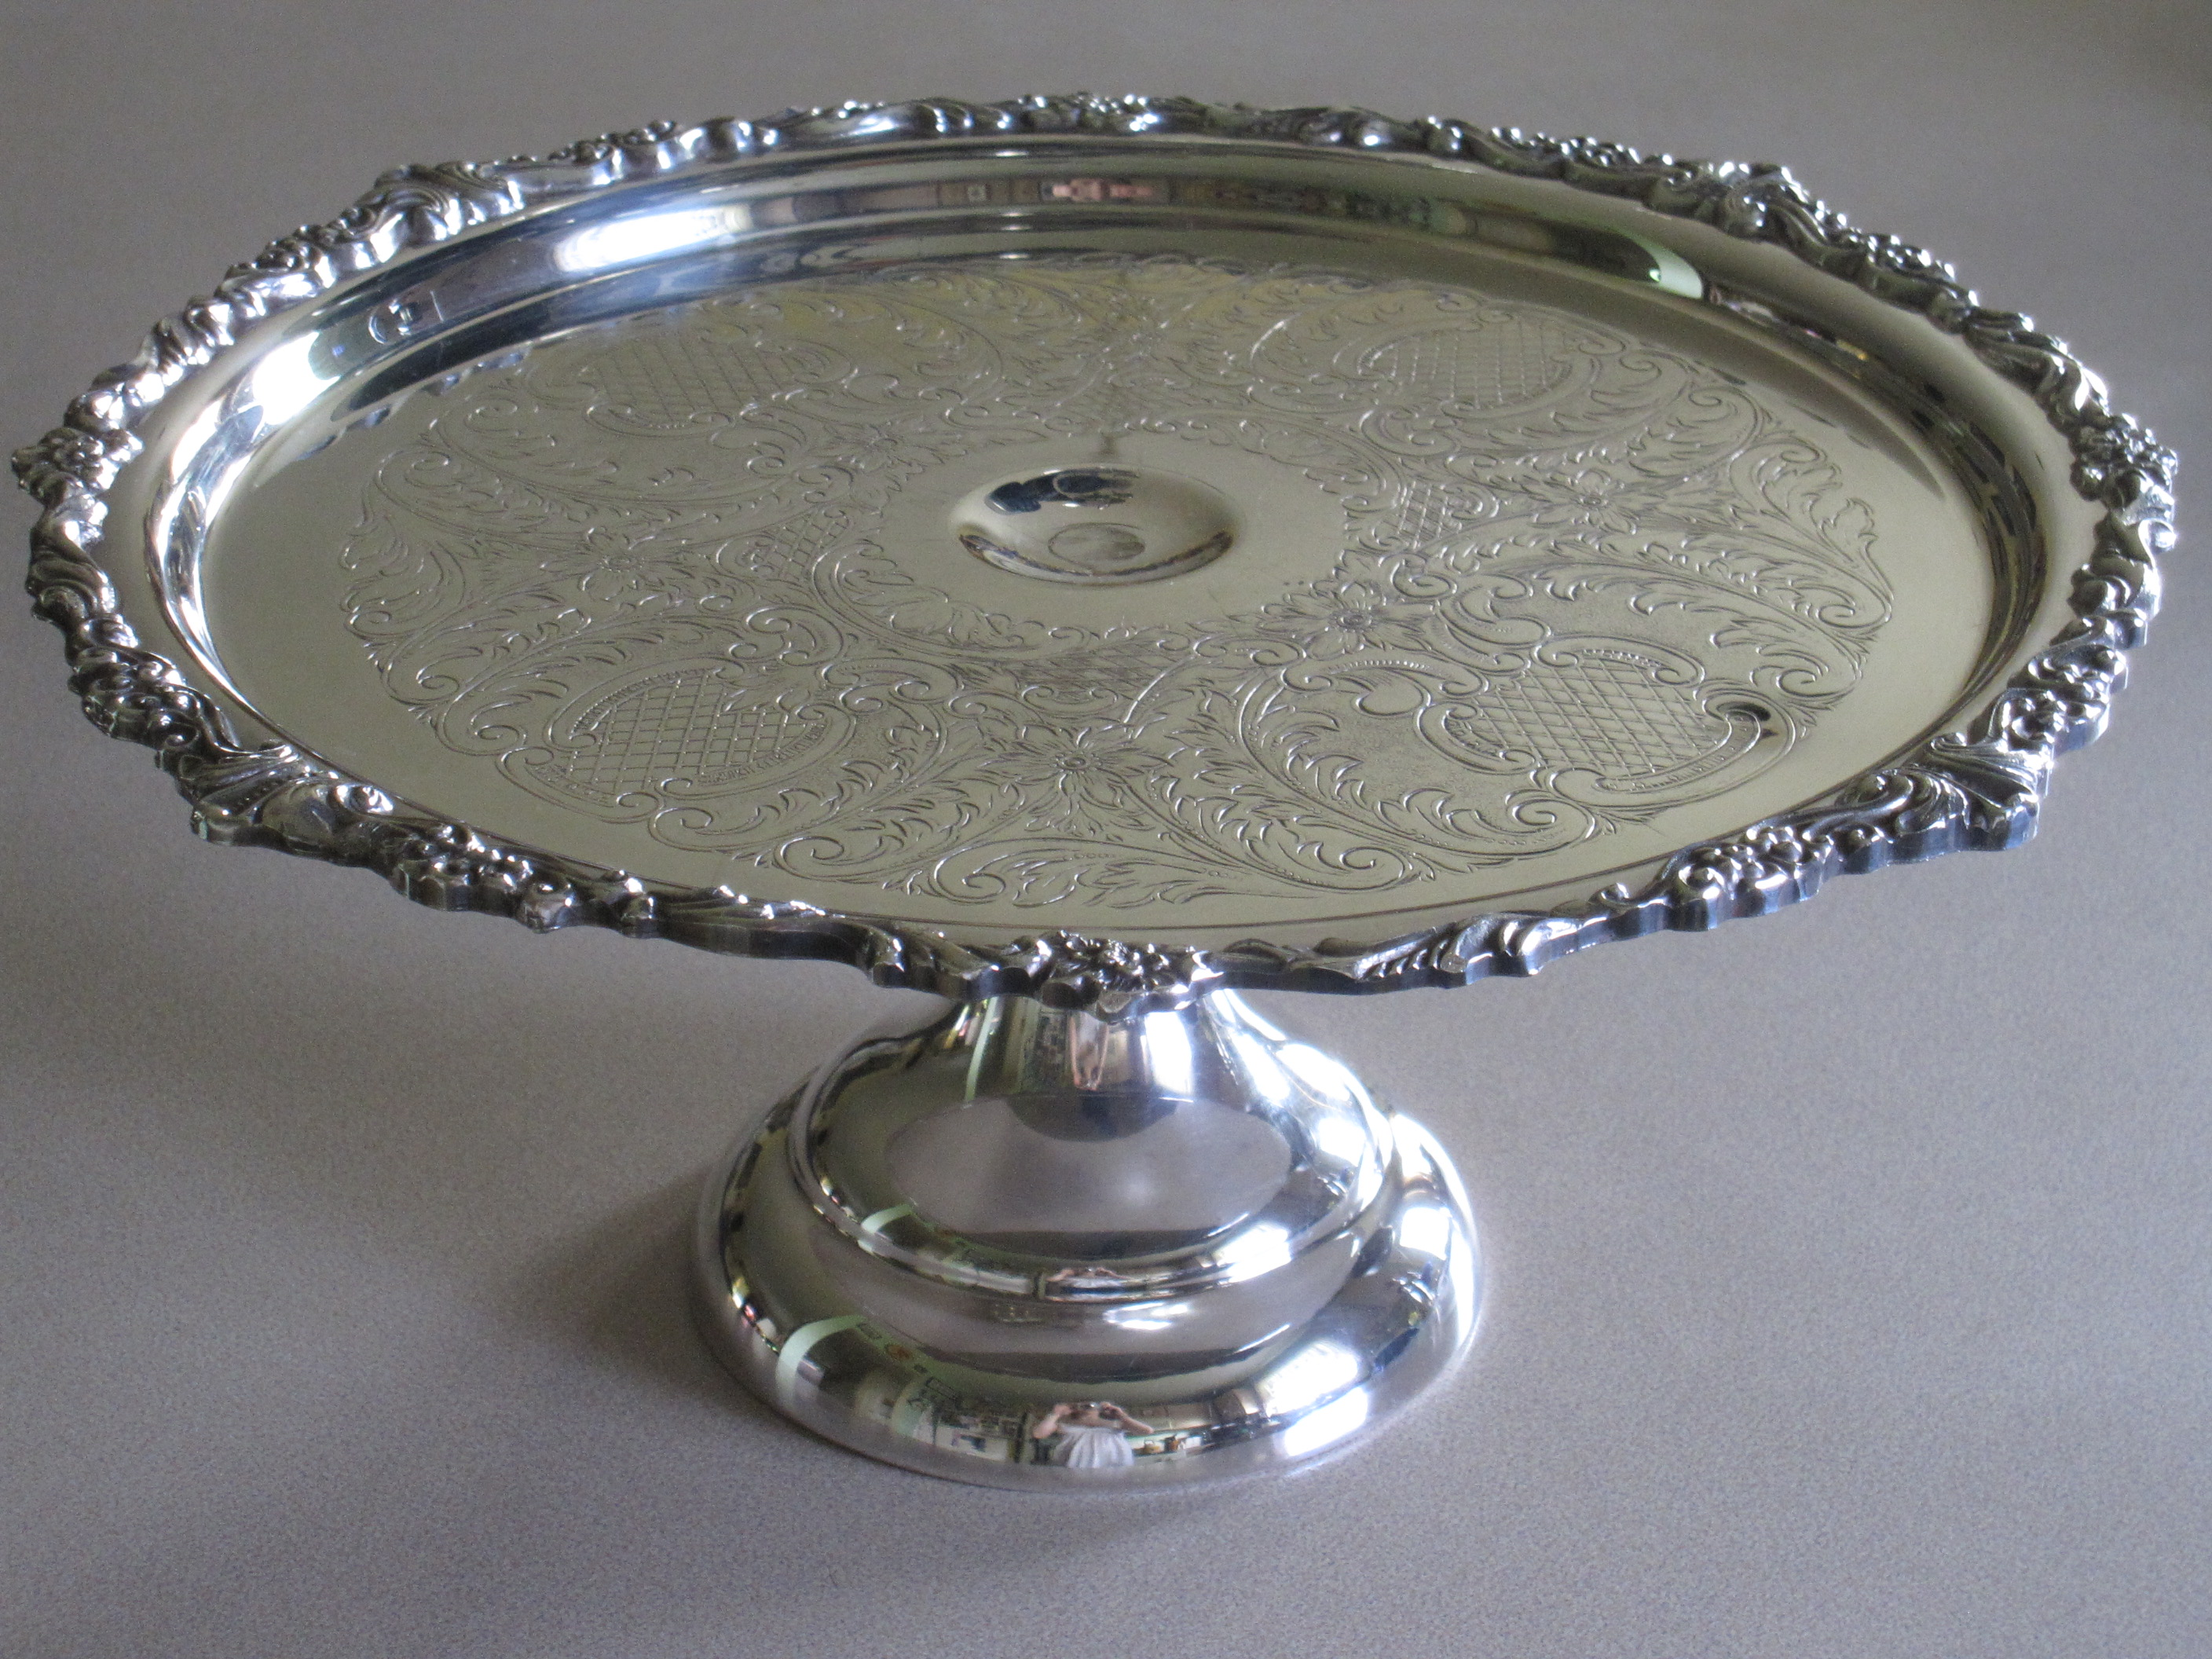 Vintage SHERIDAN Silverplated Cake Stand Tray antique appraisal & Unique Pictures Of Silver Plate Cake Stand - Best Home Plans and ...